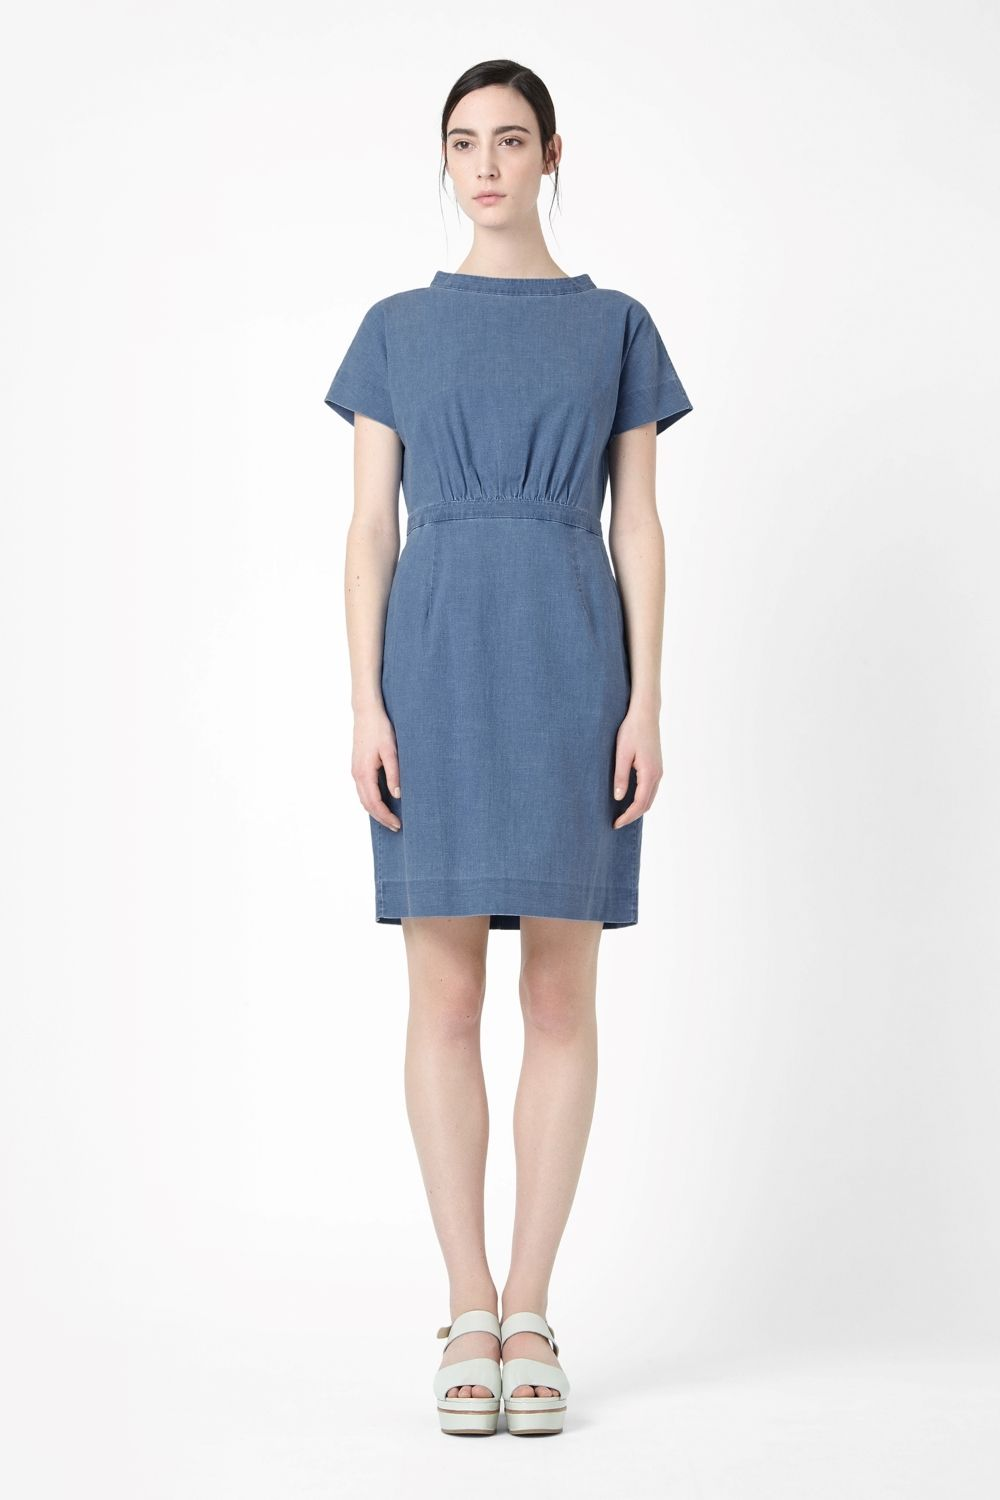 Made from lightweight cotton chambray with a washed denim quality, this casual dress has a wide raised collar, hidden back zip and a fitted waistband for a flared silhouette. This dress was made with a special dye process, so each one is a little different from the next.